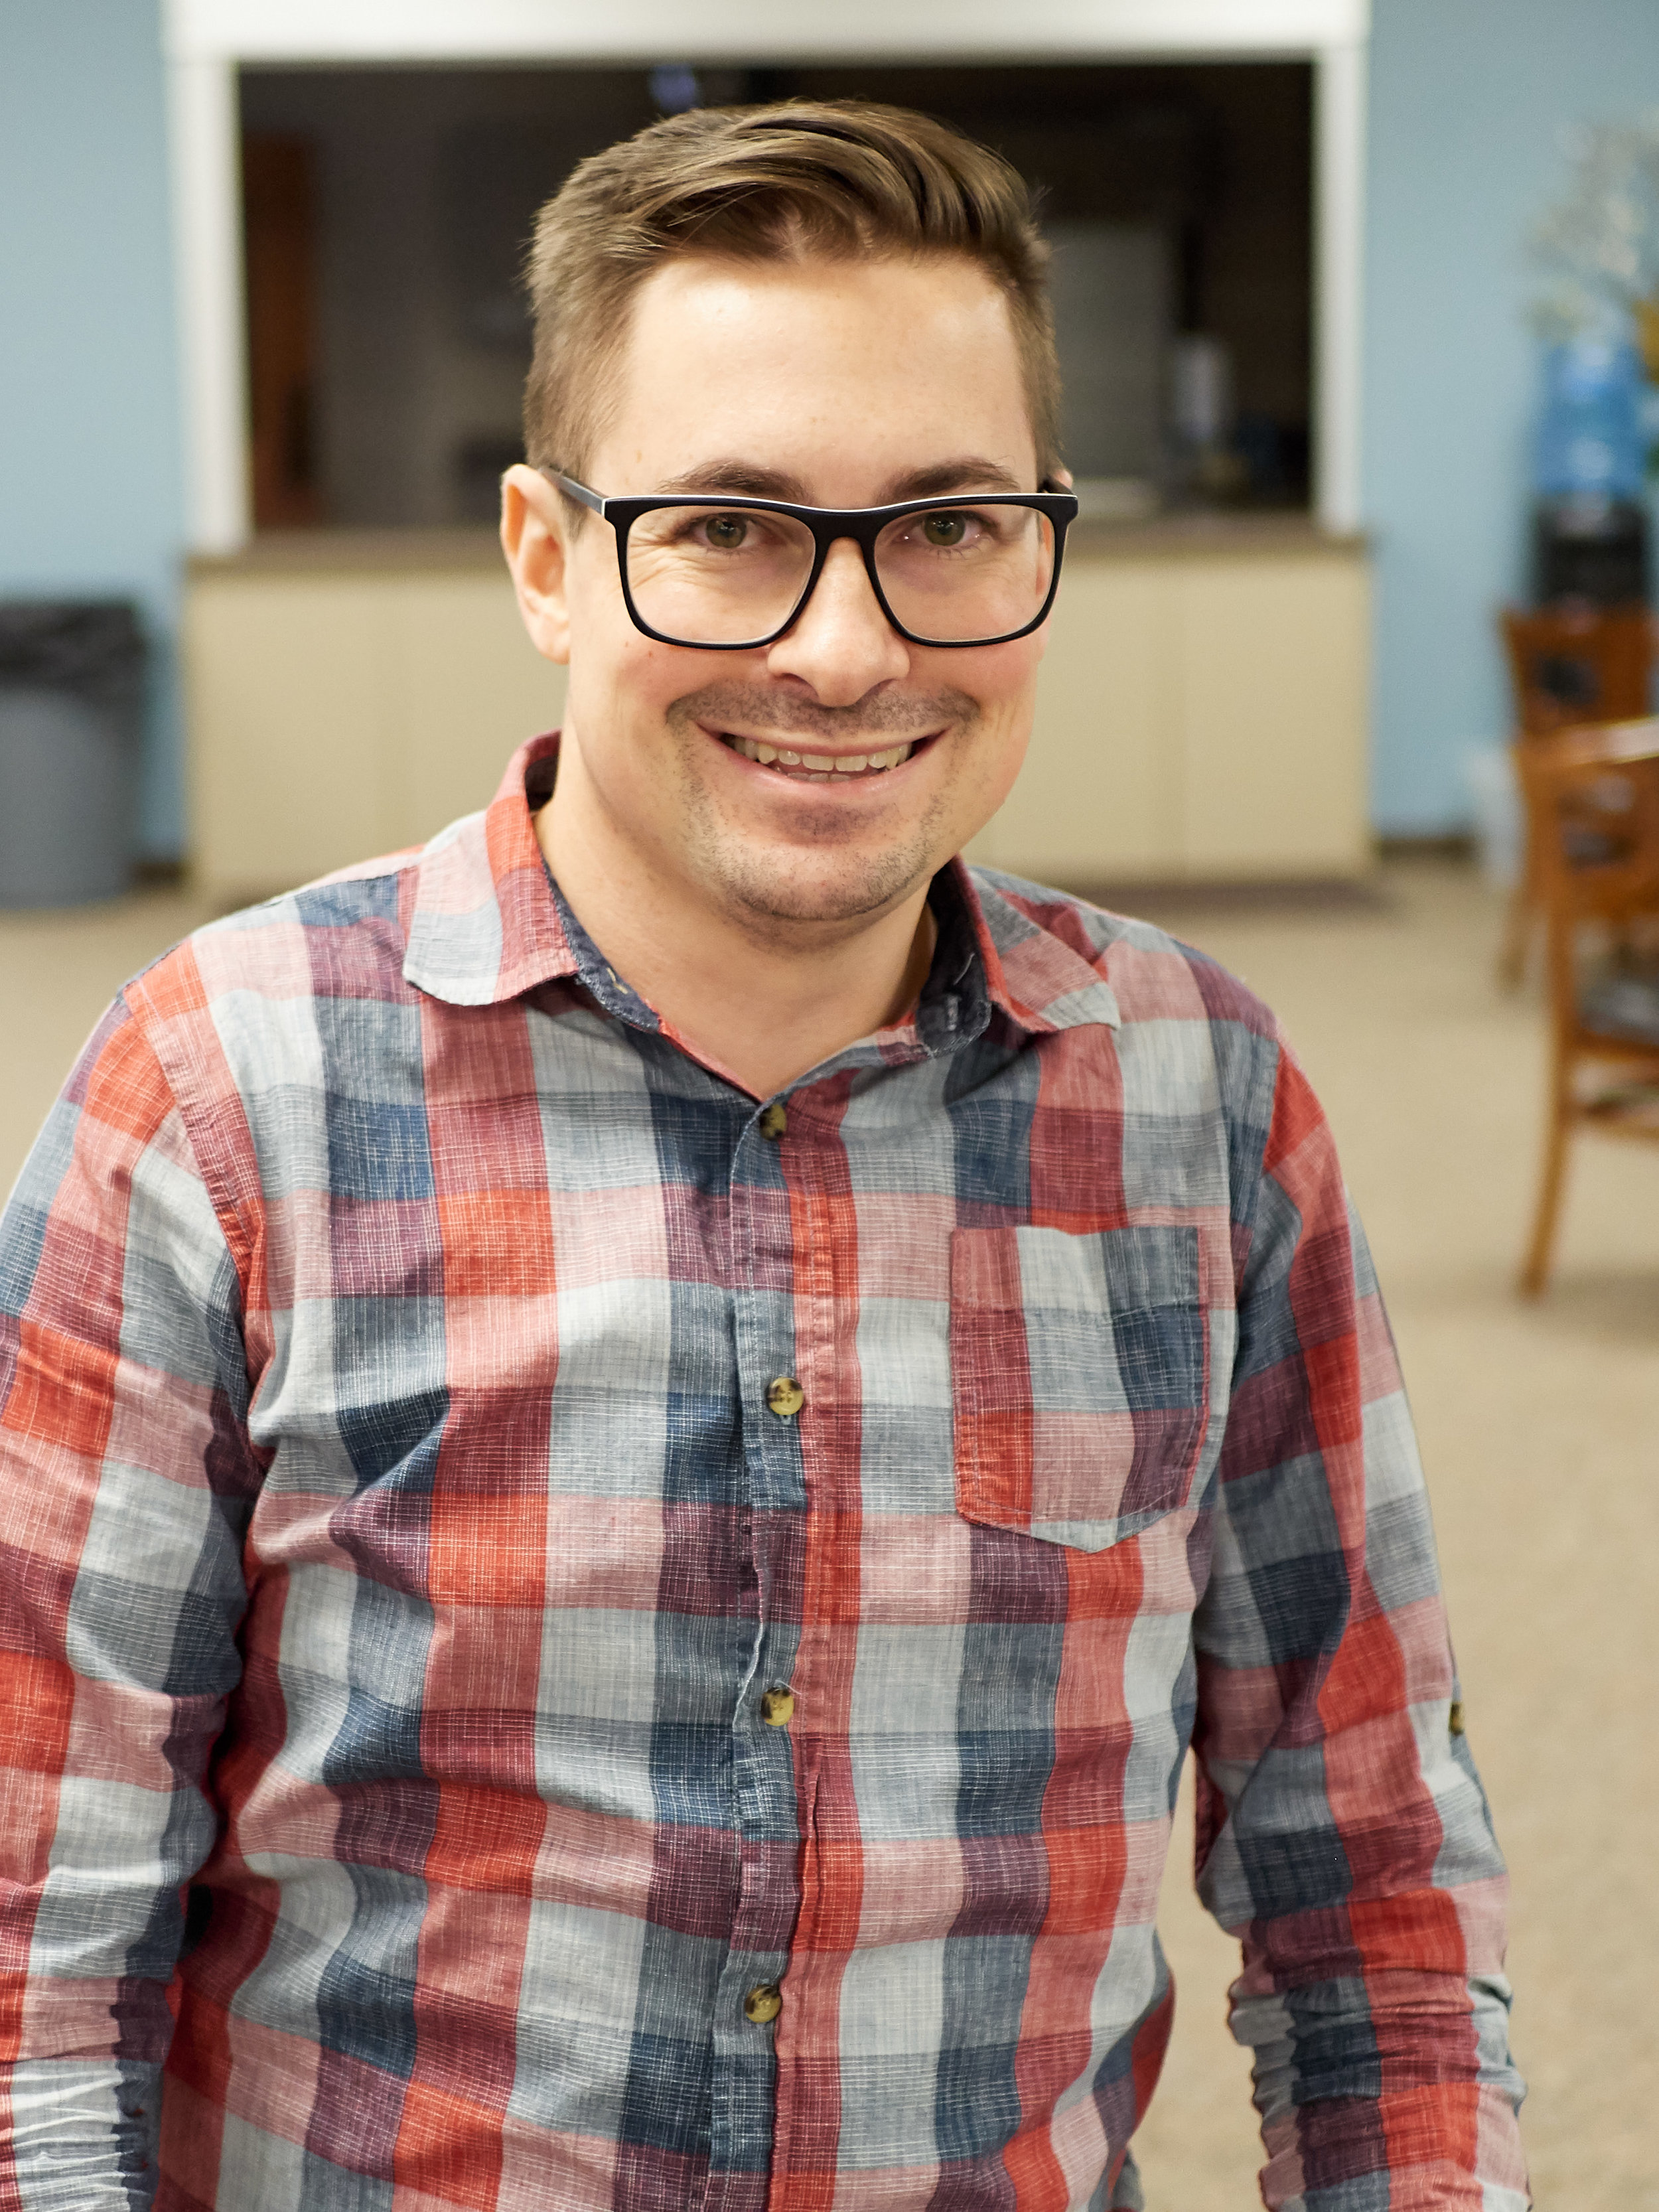 COMMUNITY FORMATION PASTOR: Anthony Parrott anthony@gncconline.com  Anthony Parrott and his wife Emily are the proud parents of Audrey and Wesley. They both hail from northern Indiana, so they're used to snow, just not all of this Iowa wind! Anthony studied classical piano for 6 years before getting his bachelor of arts in Biblical Studies, Ministry, and Philosophy from Bethel College, Indiana and a Masters of Divinity from Asbury Theological Seminary.  As Community Formation Pastor, Anthony leads the leaders of our Missional Communities and small groups, helping people find friends and compatriots as they connect, serve, and grow together in Christ.